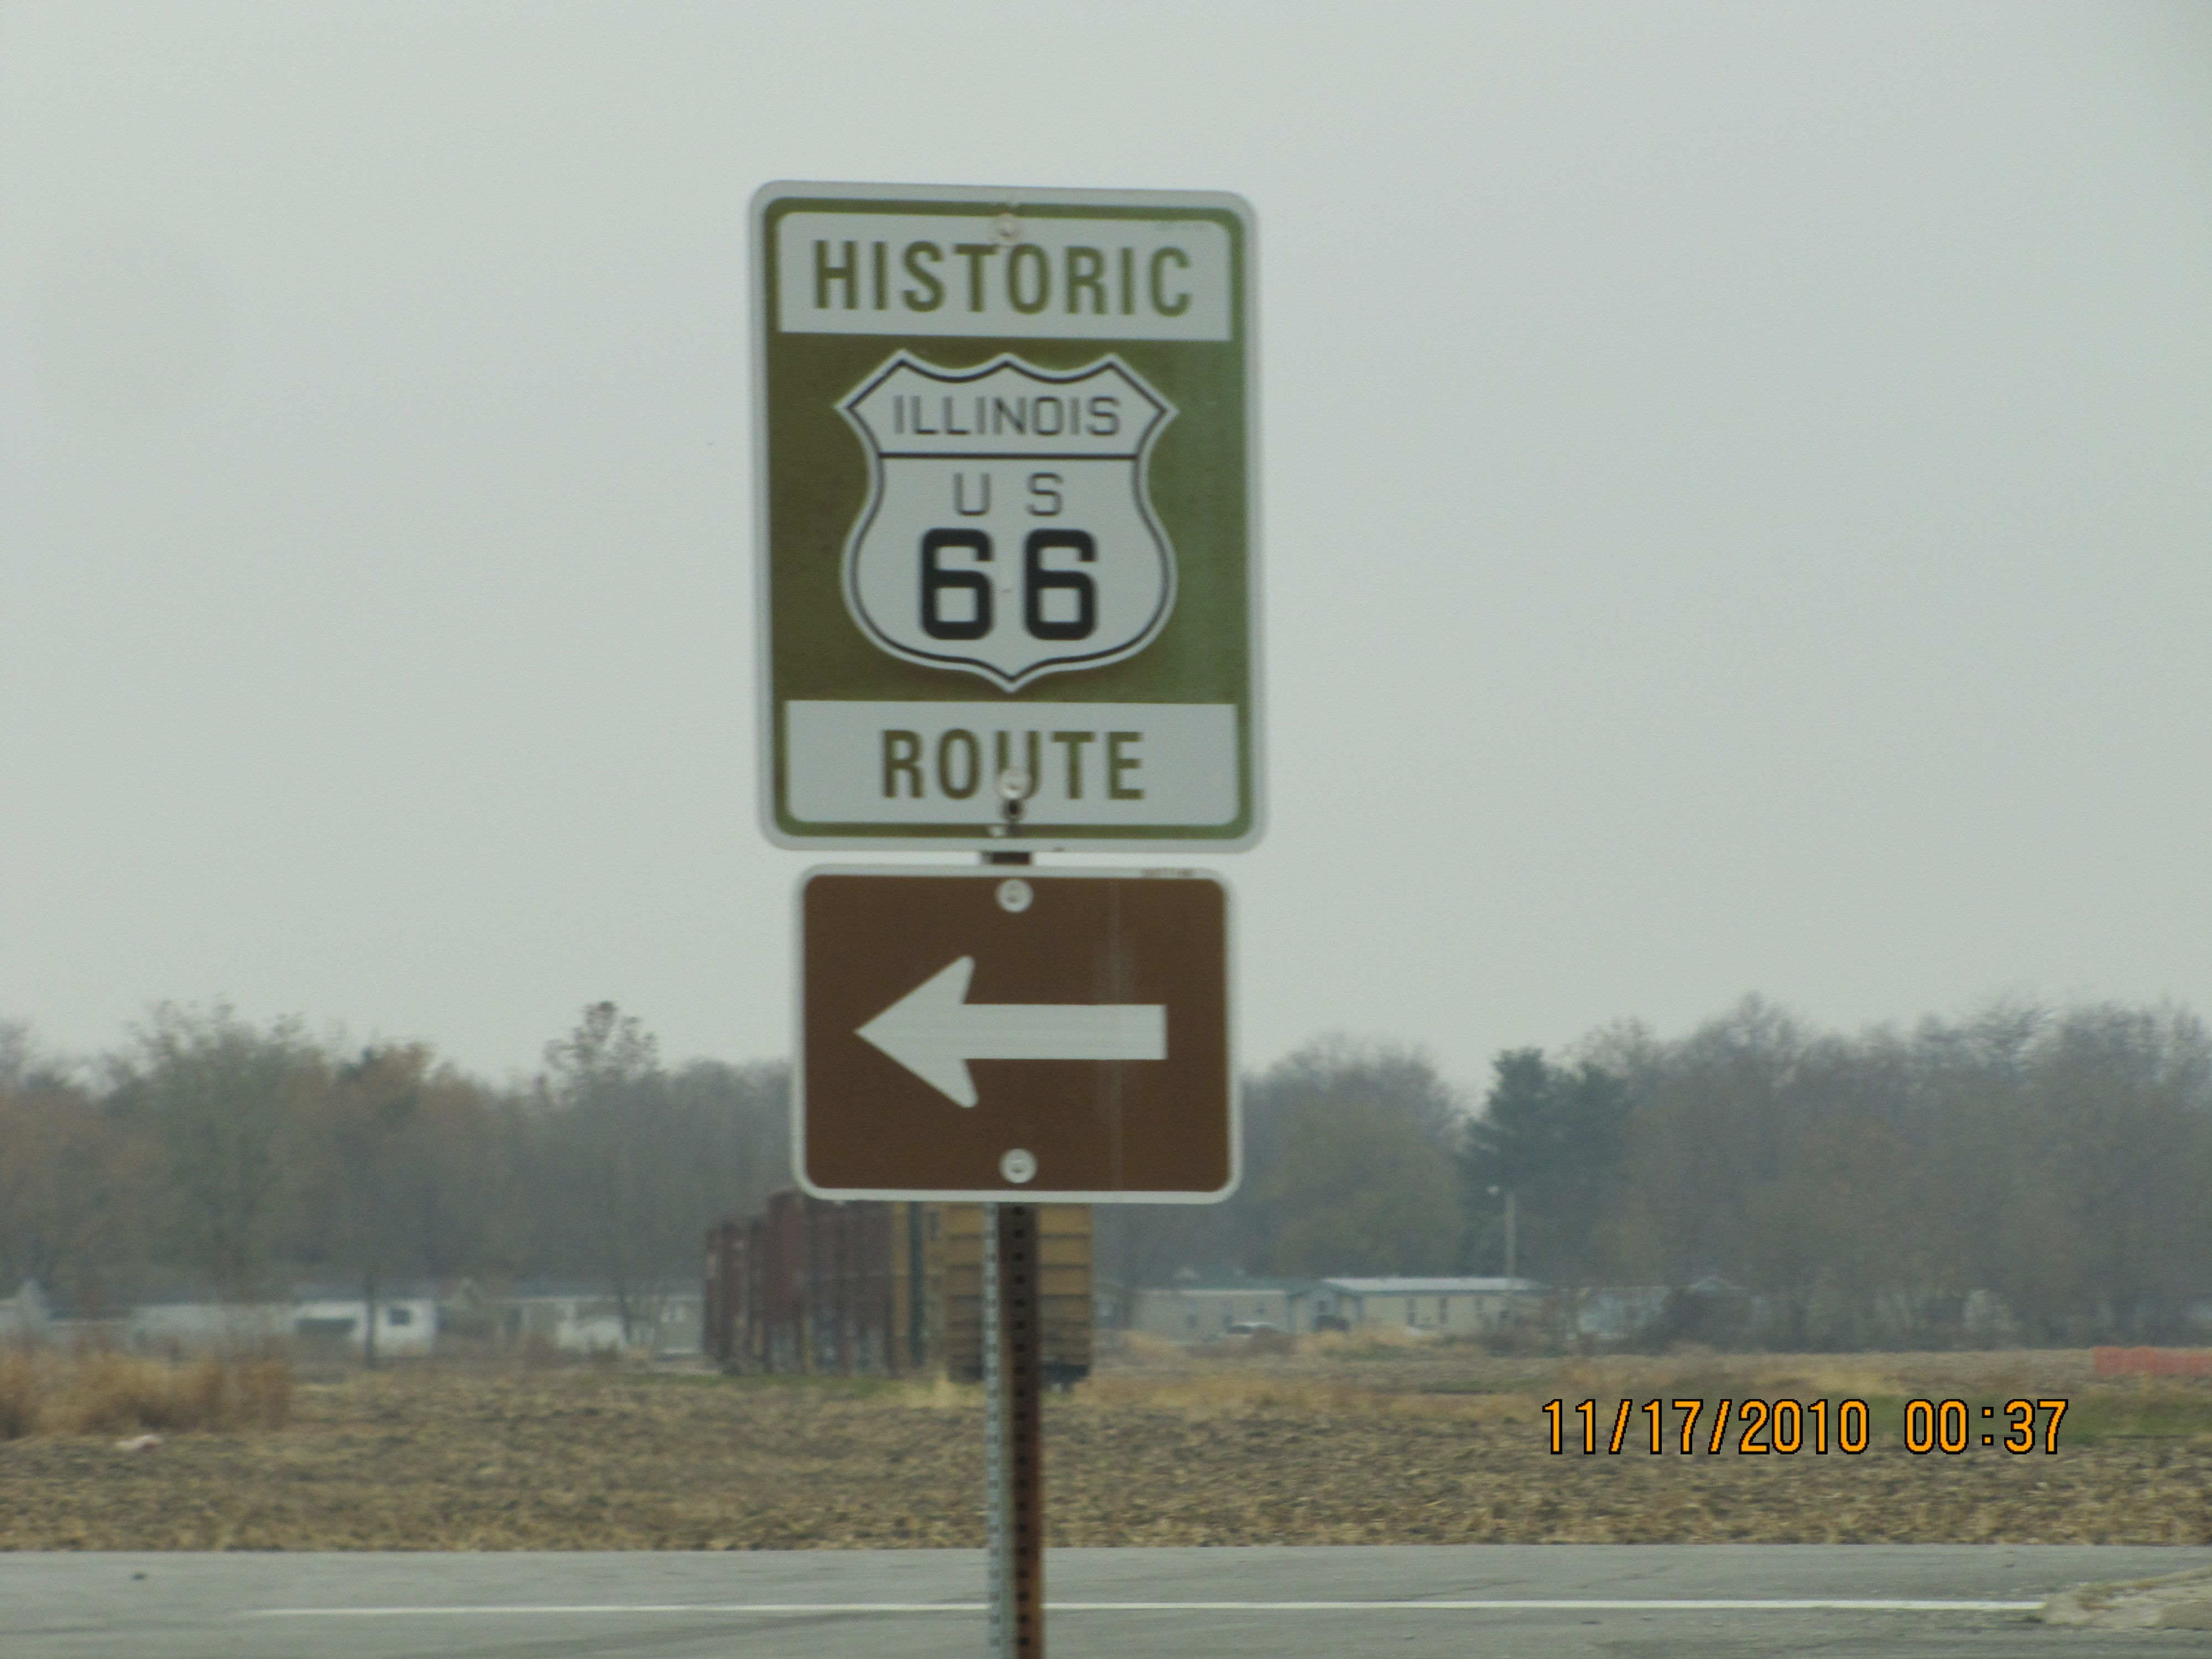 There no place like home, cruising Route 66